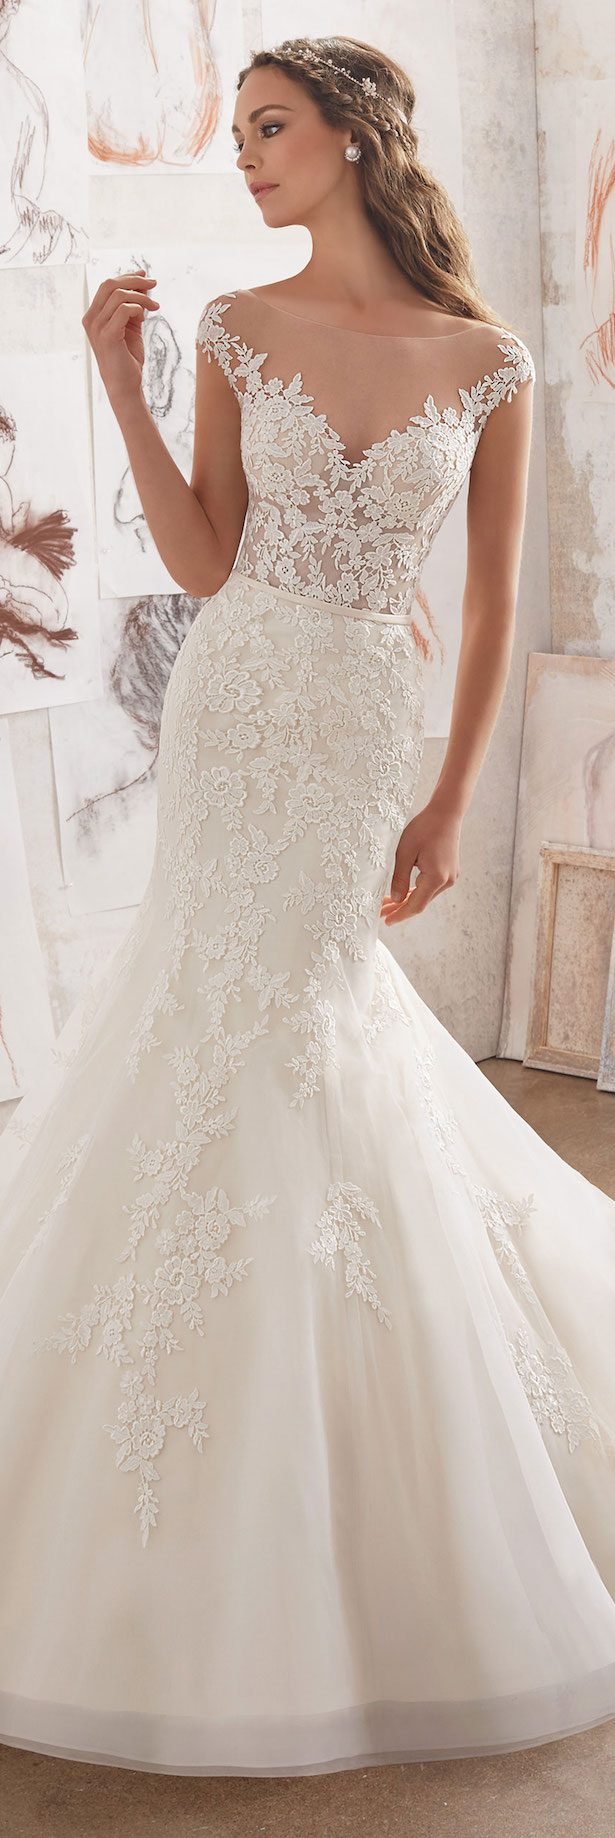 Best Wedding Dresses of 2017 -Mori Lee by Madeline Gardner Wedding Dress Collection Blu Spring 2017